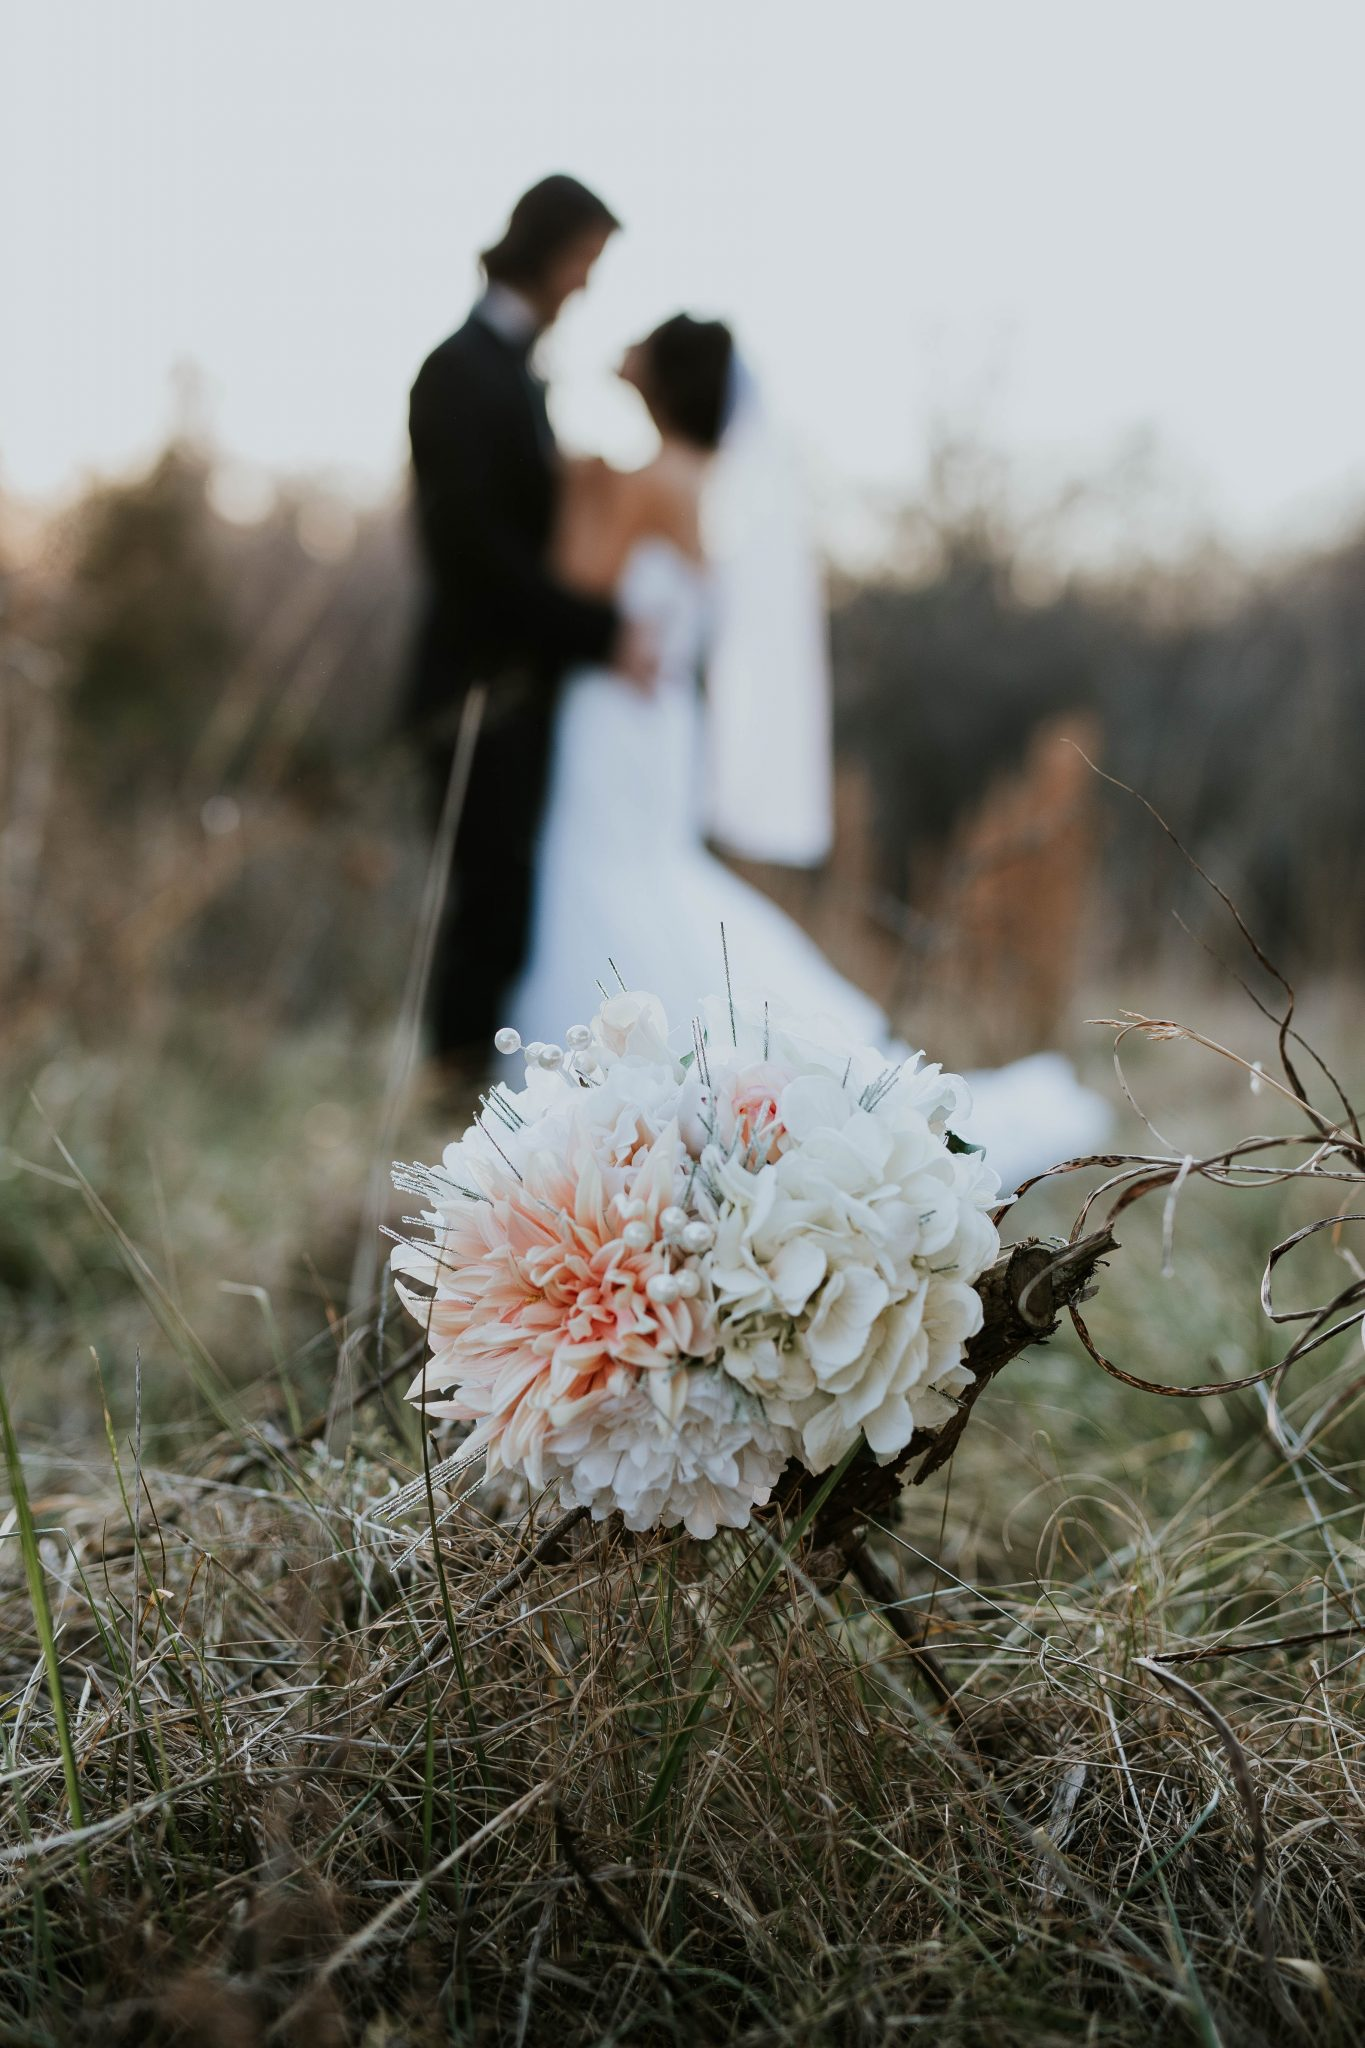 Digital vs Analogue Bride from North Carolina Lifestyle Blogger Champagne Style Bare Budget